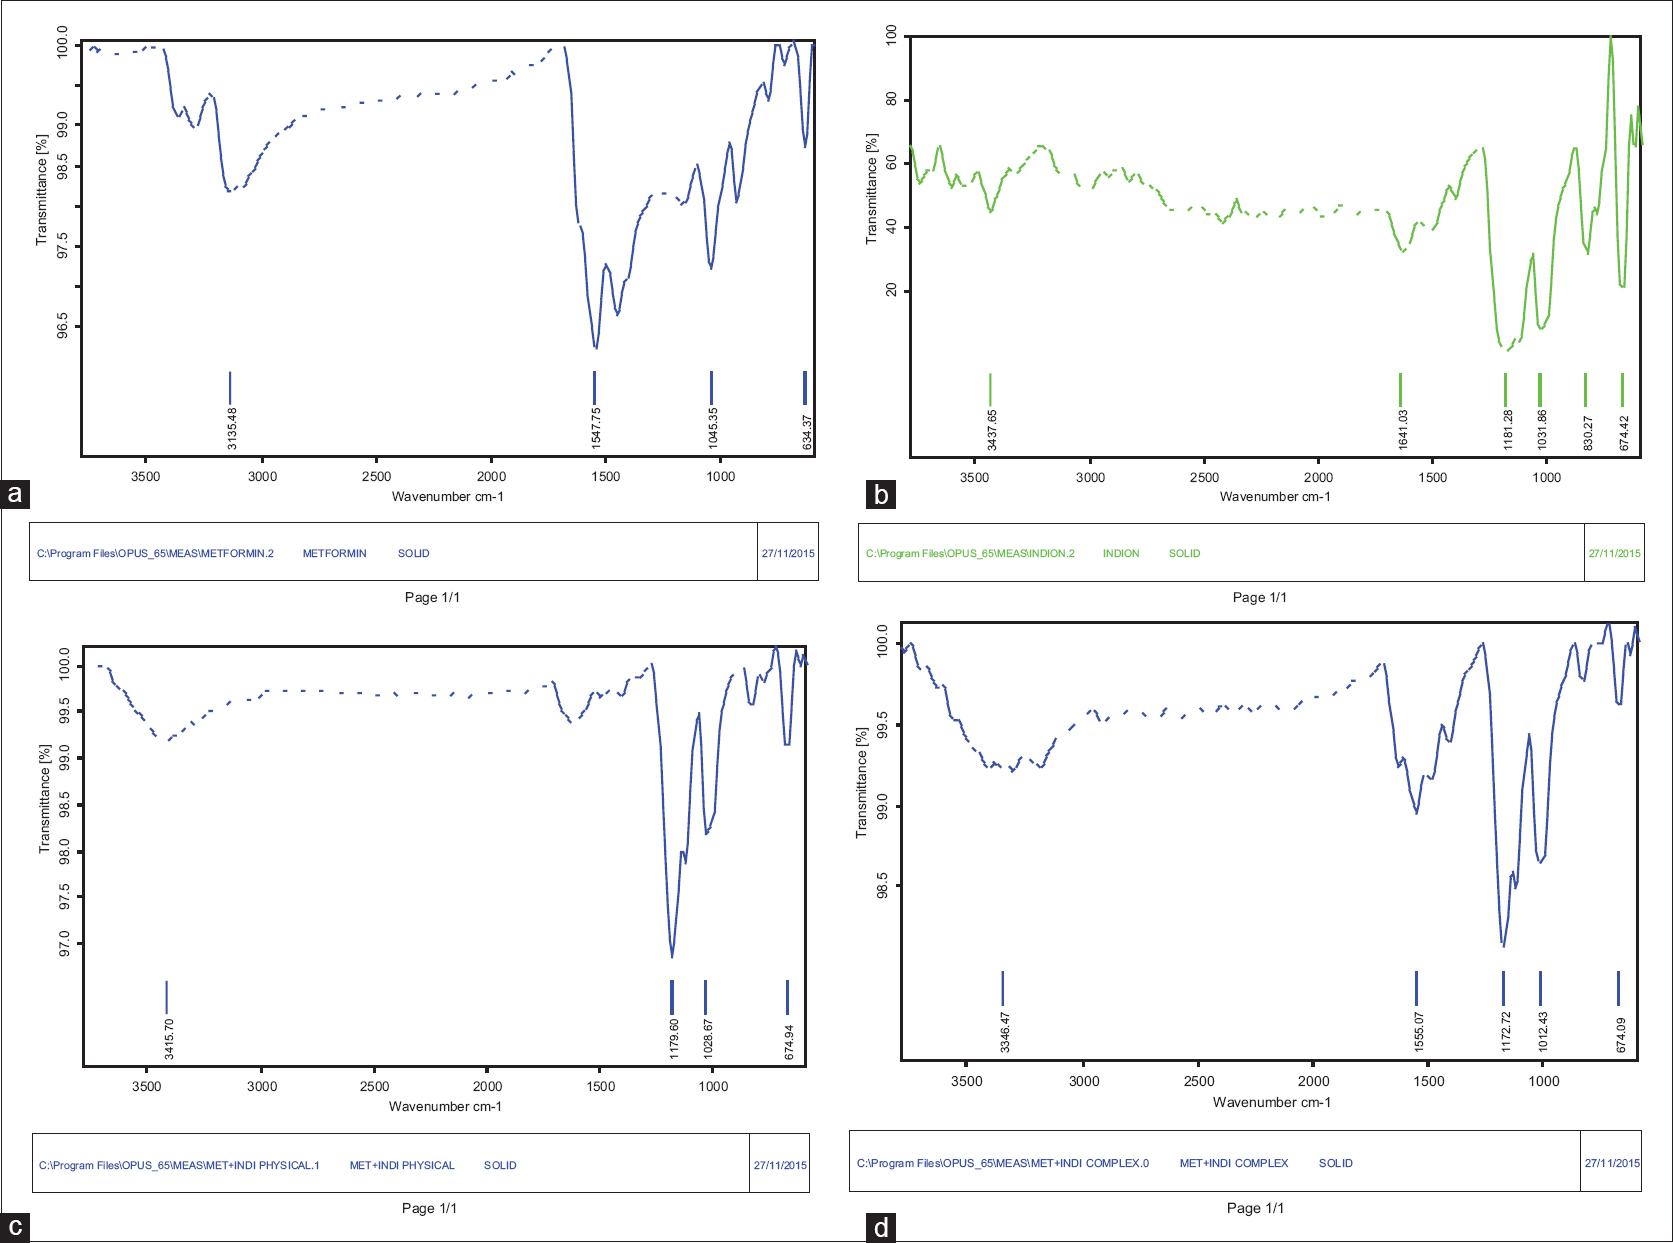 Fourier transform‑infrared spectroscopy of metformin hydrochloride and its complex with resin.